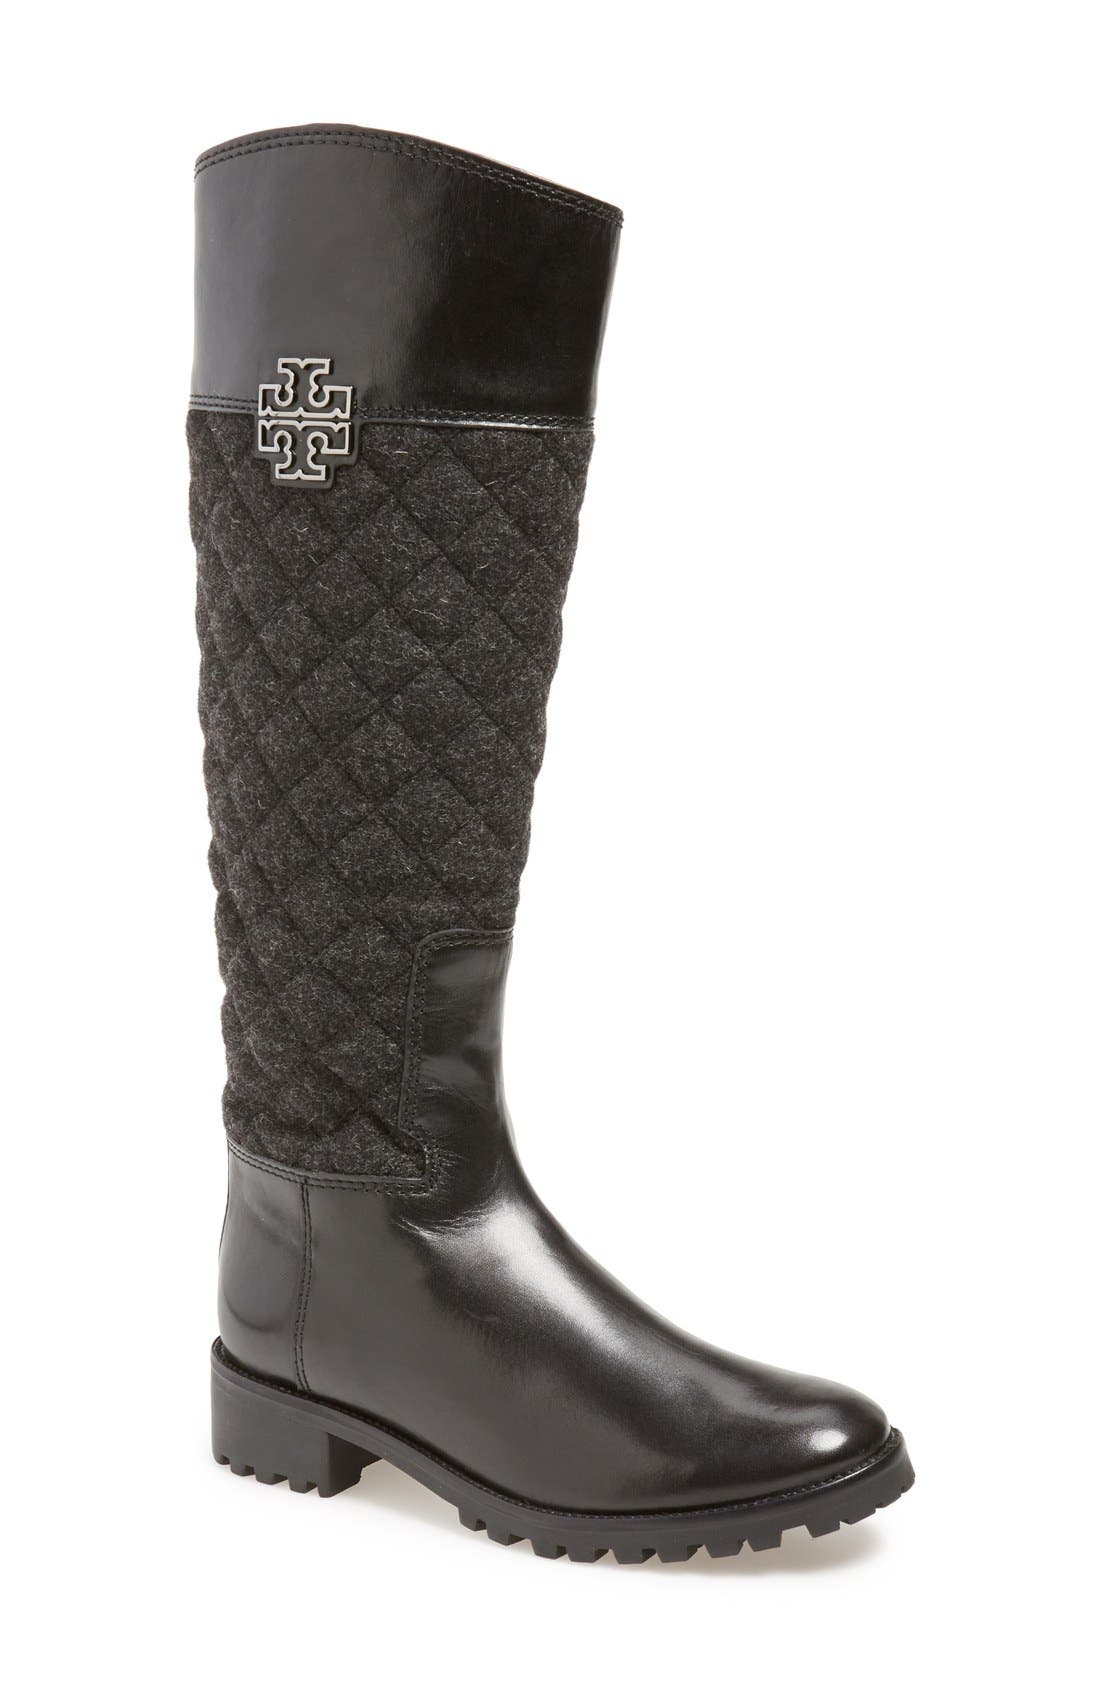 Alternate Image 1 Selected - Tory Burch 'Melinda' Riding Boot (Women) (Nordstrom Exclusive)